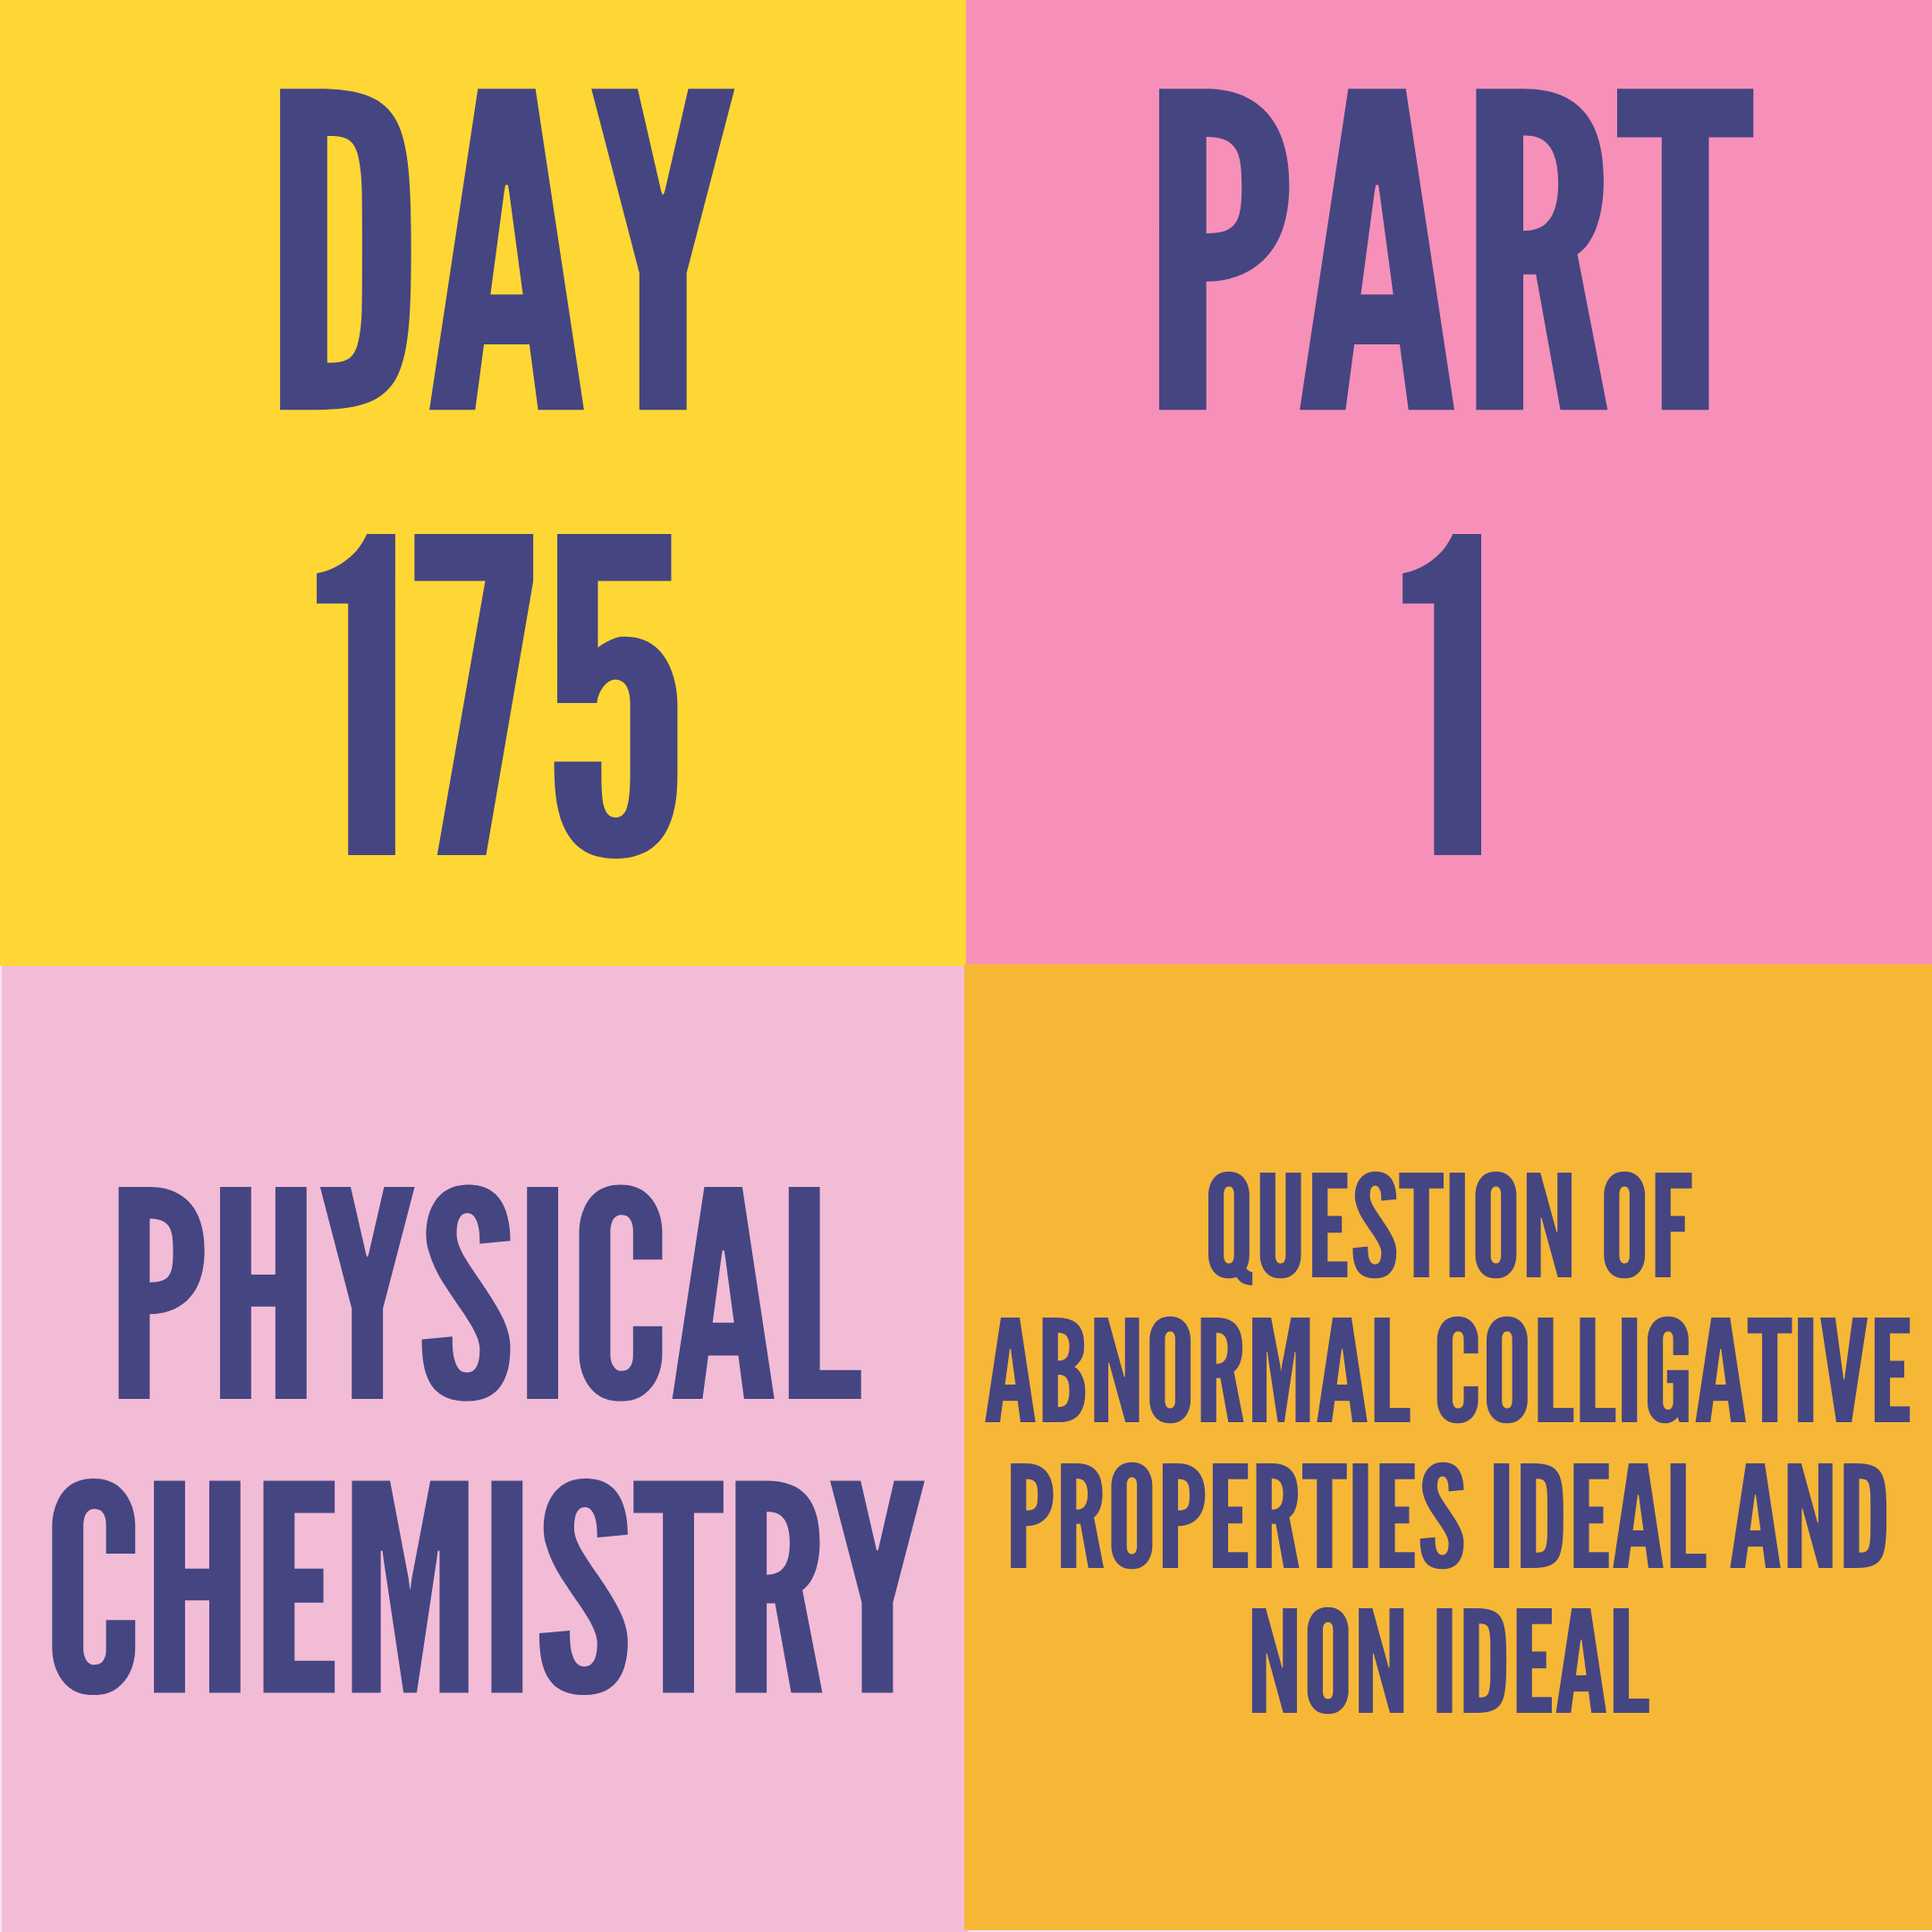 DAY-175 PART-1 QUESTION OF ABNORMAL COLLIGATIVE PROPERTIES IDEAL AND NON IDEAL